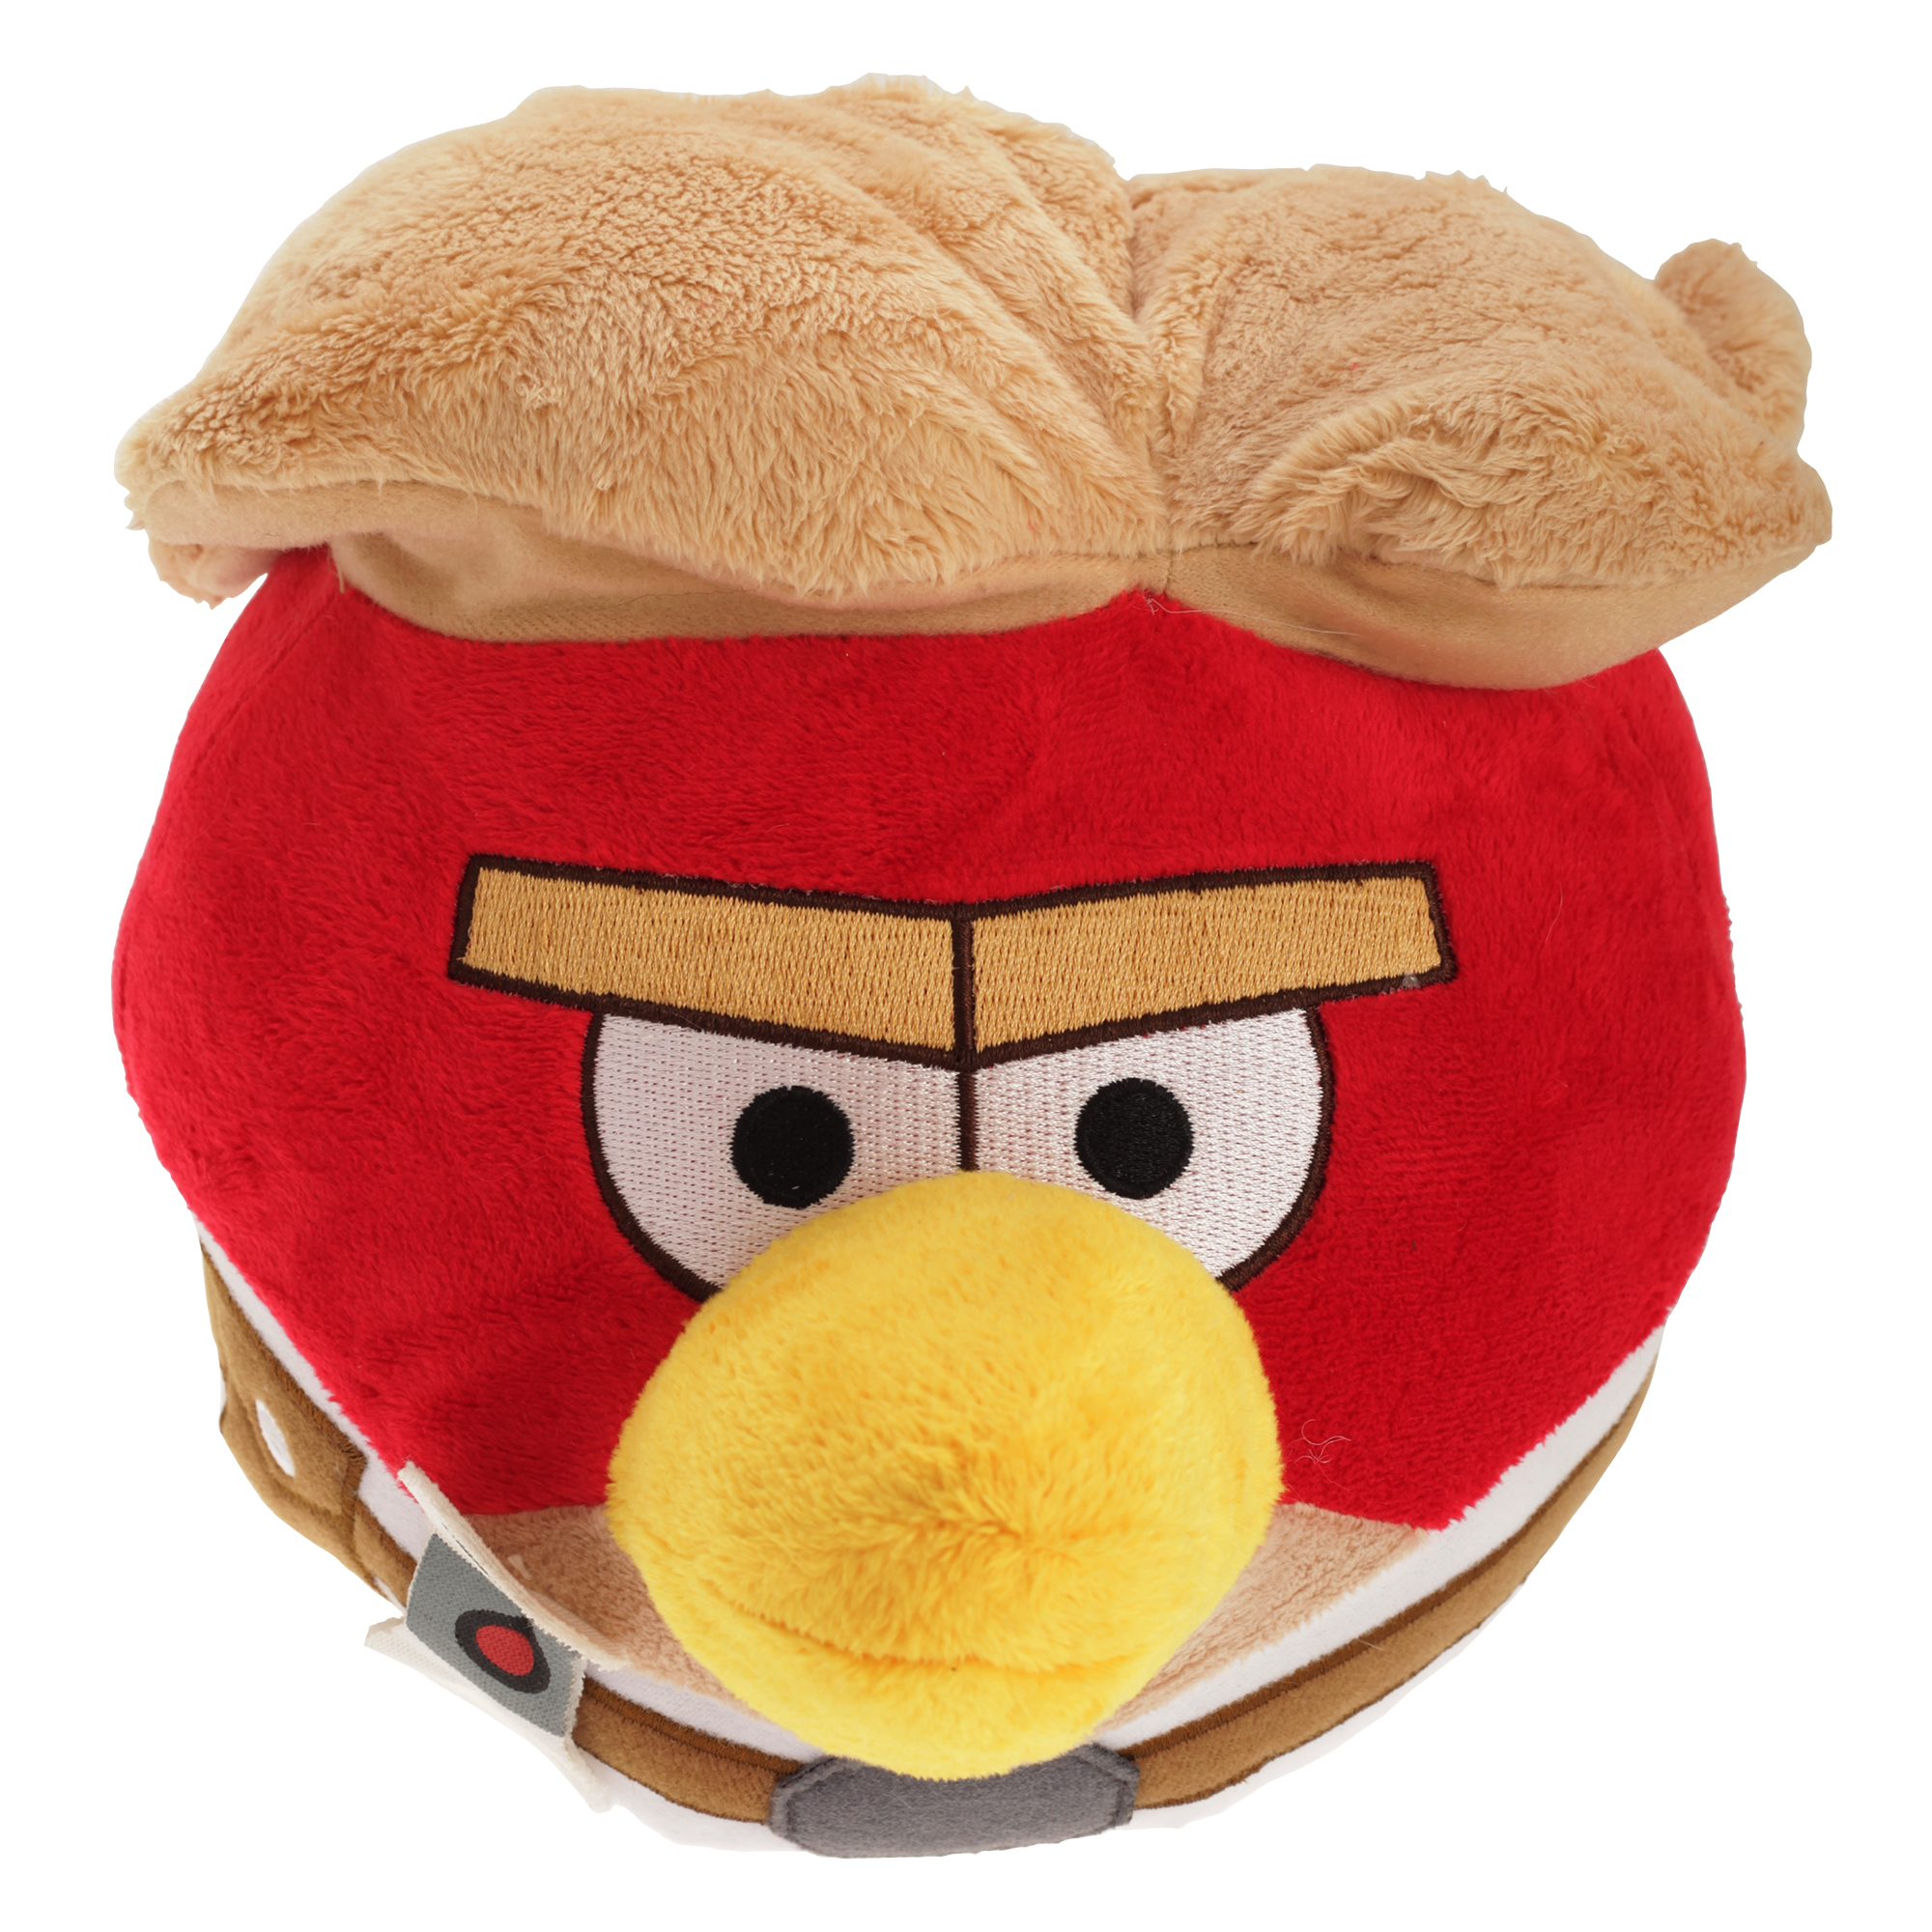 Angry Birds Stuffed Toys : Angry birds star wars official character plush toy ebay